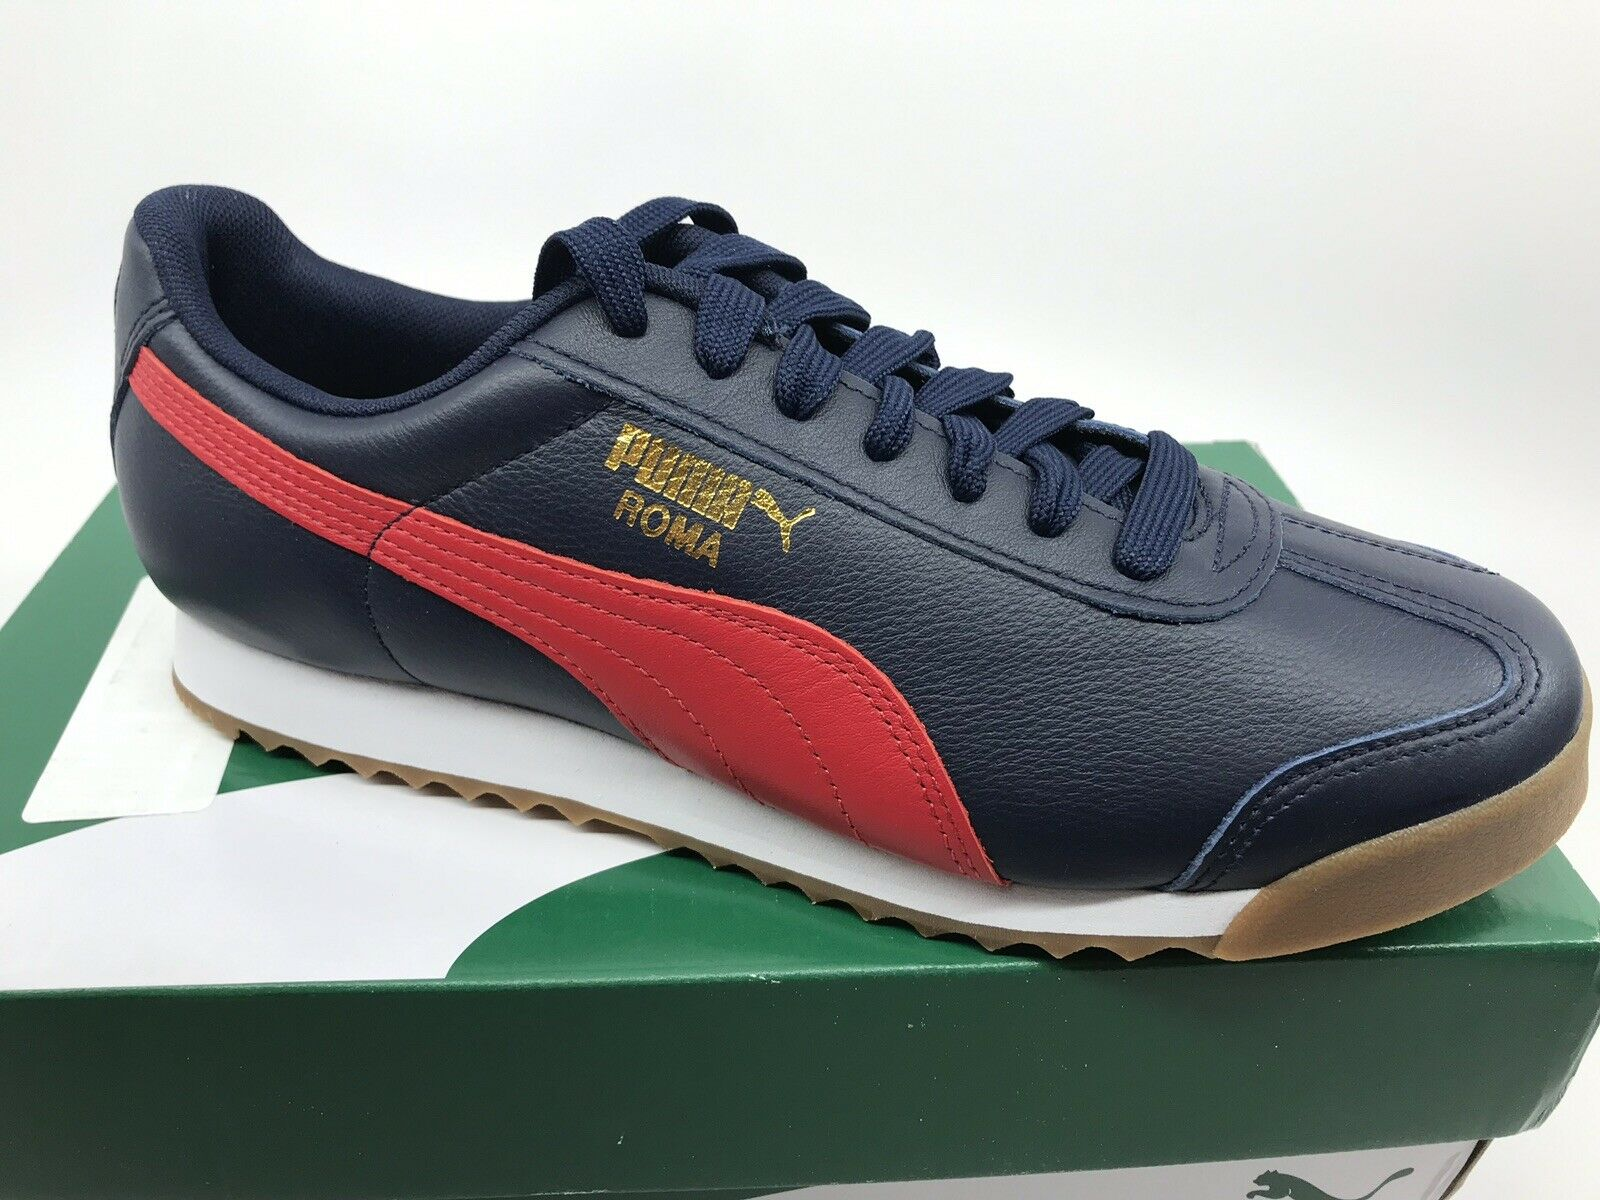 PUMA ROMA Mens CLASSIC GUM TRAINER PEACOAT RIBBON rot Navy Größe 9 NEW